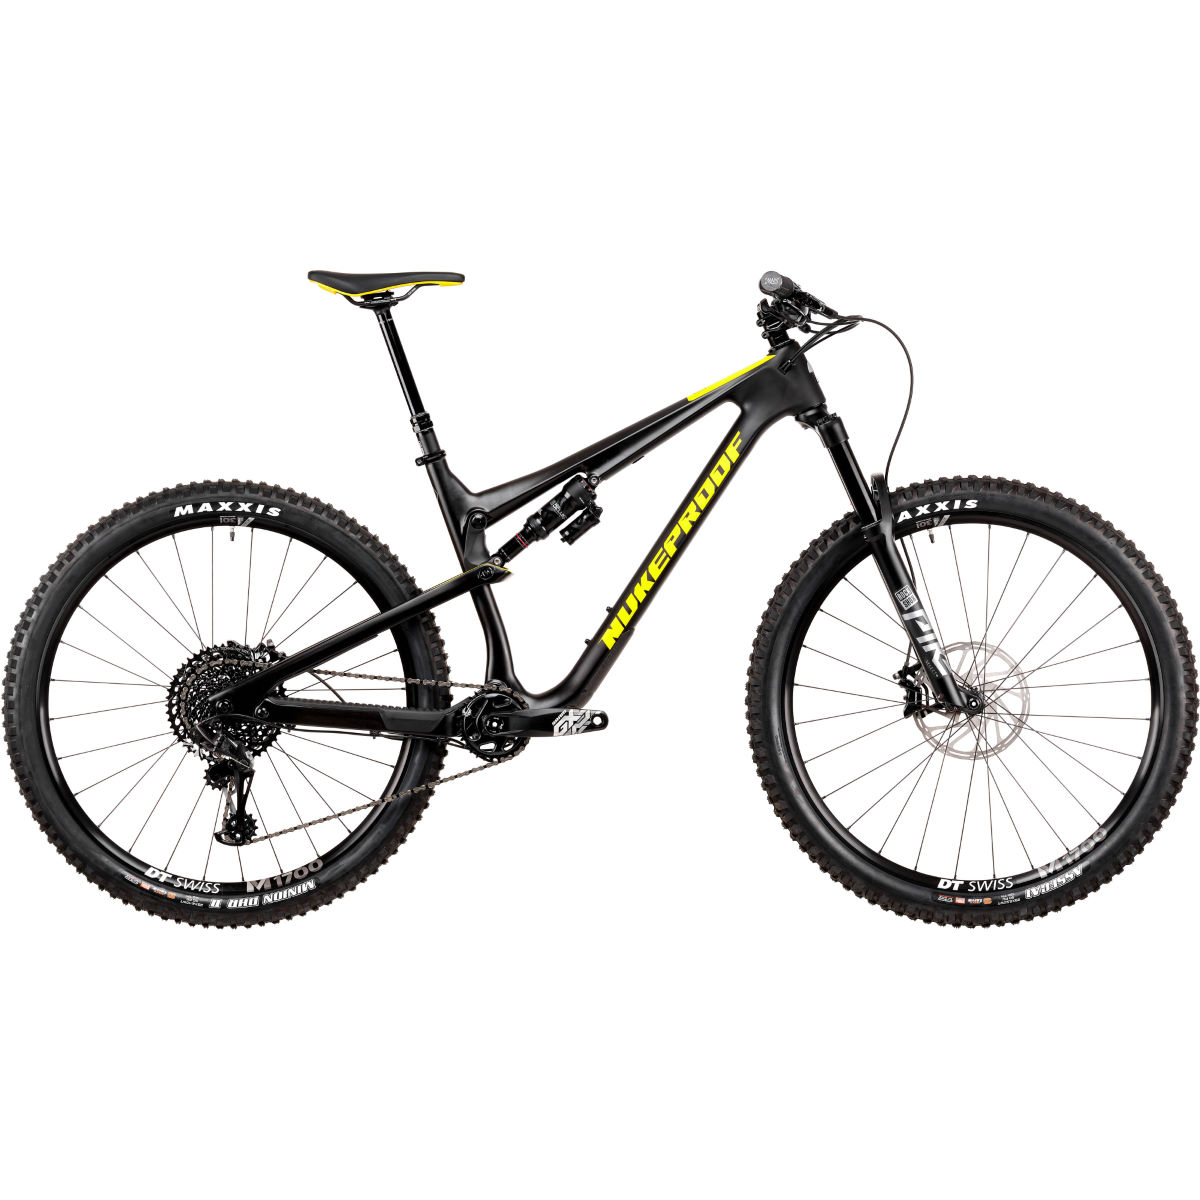 Nukeproof Nukeproof Reactor 290 Pro Carbon Bike (GX Eagle - 2020)   Full Suspension Mountain Bikes